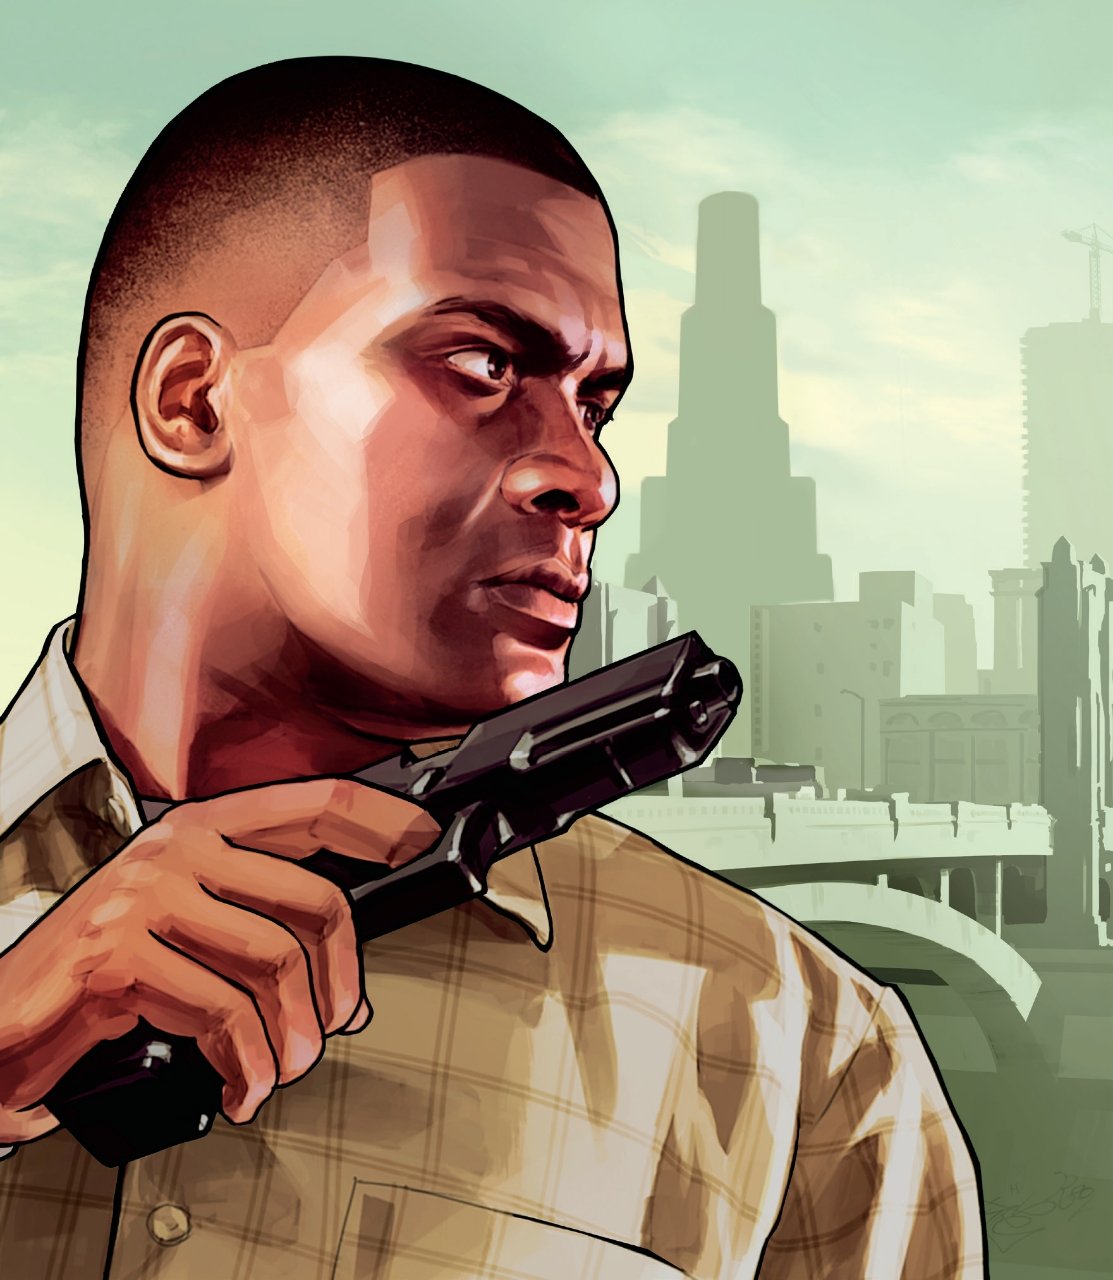 Franklin Clinton: the story of the character GTA5 49